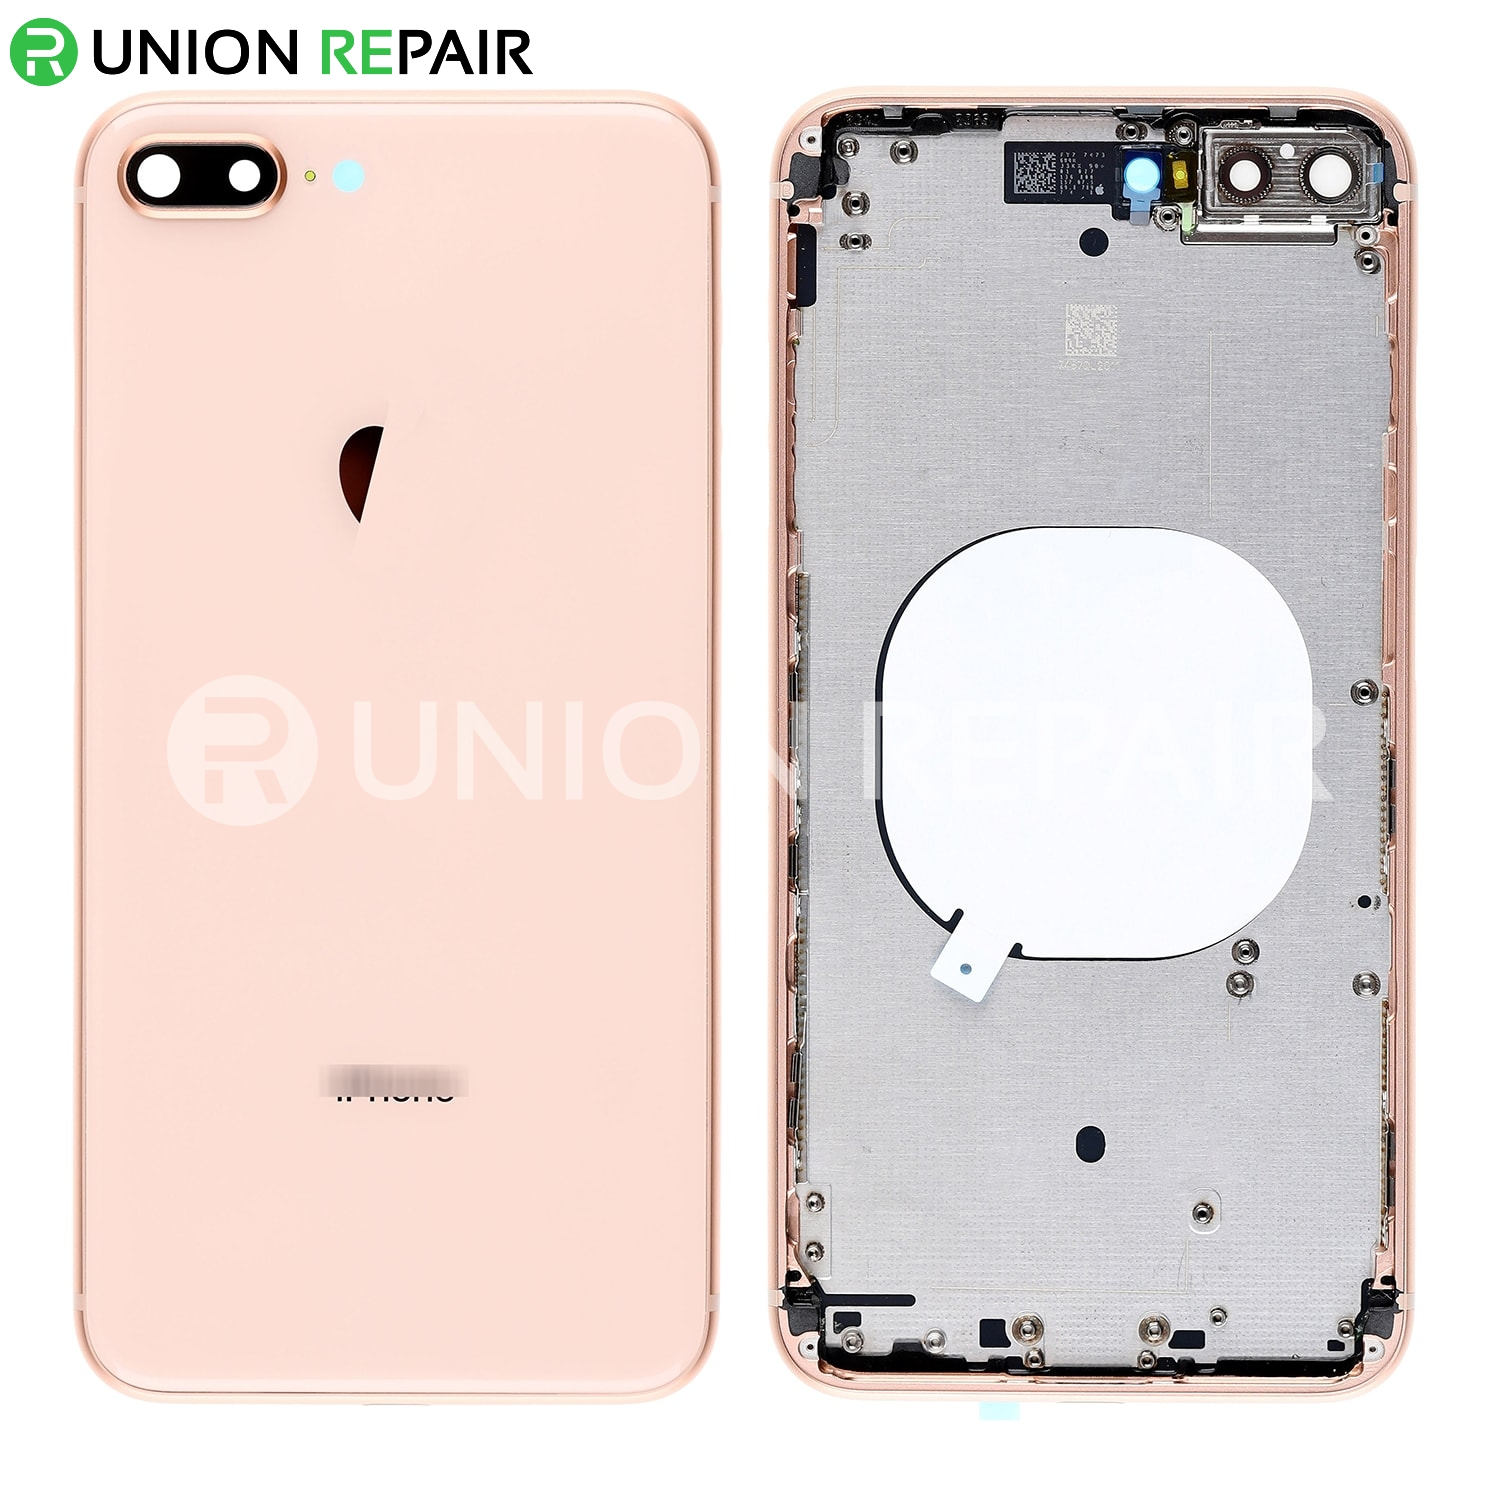 huge selection of 1622c 0bca5 Replacement for iPhone 8 Plus Back Cover with Frame Assembly - Gold